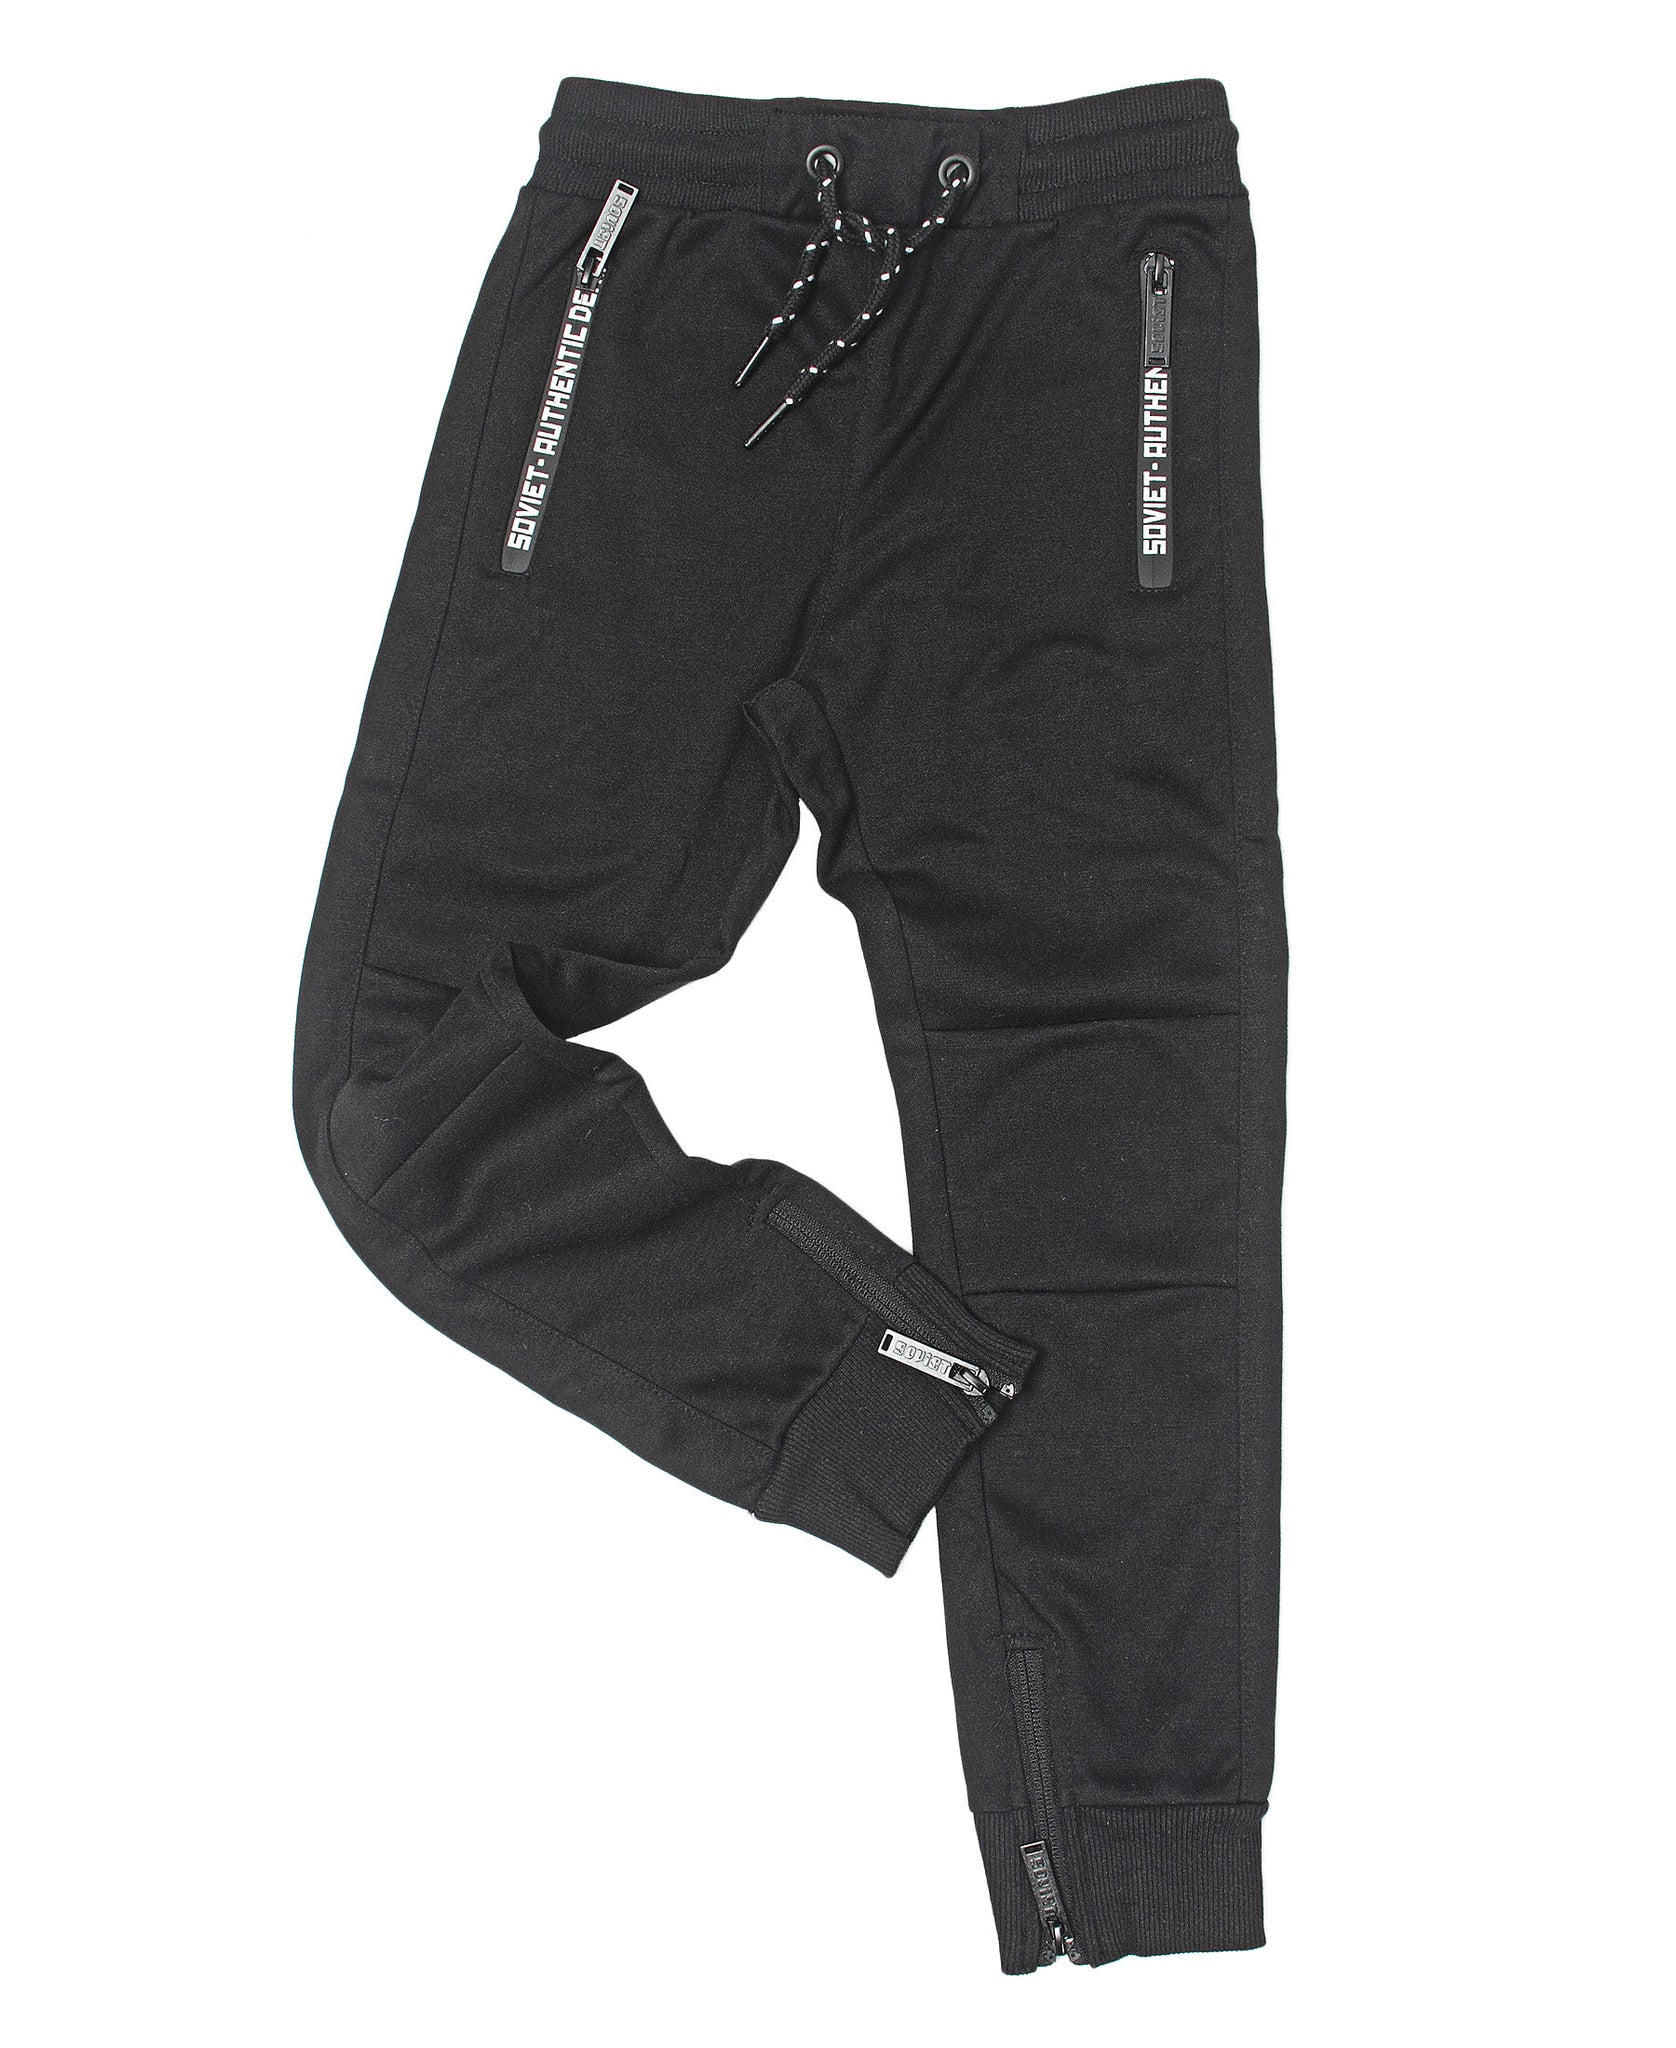 Boys Compton Trackpants - Black